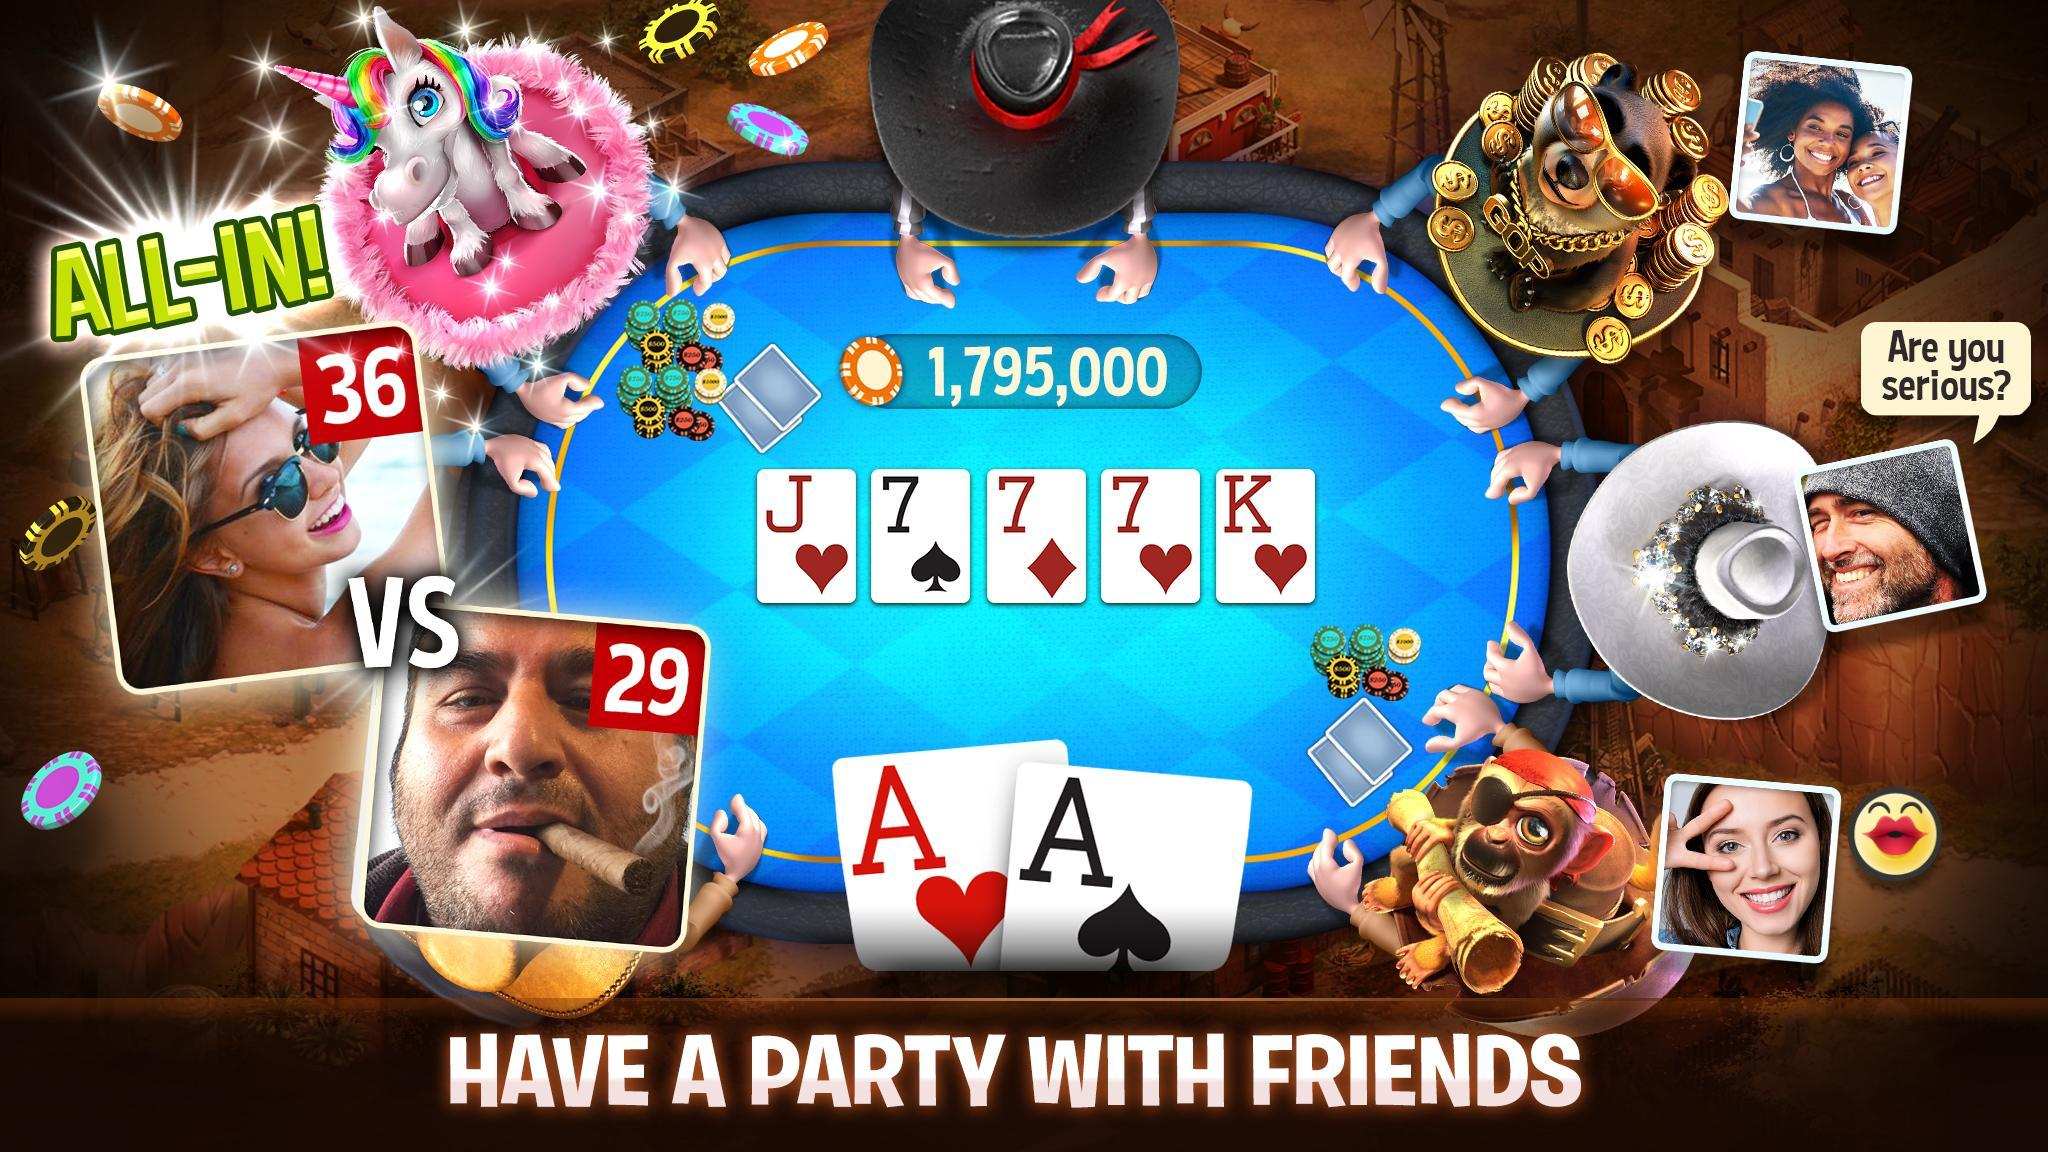 Governor of Poker 3 - Texas Holdem With Friends 6.9.1 Screenshot 3